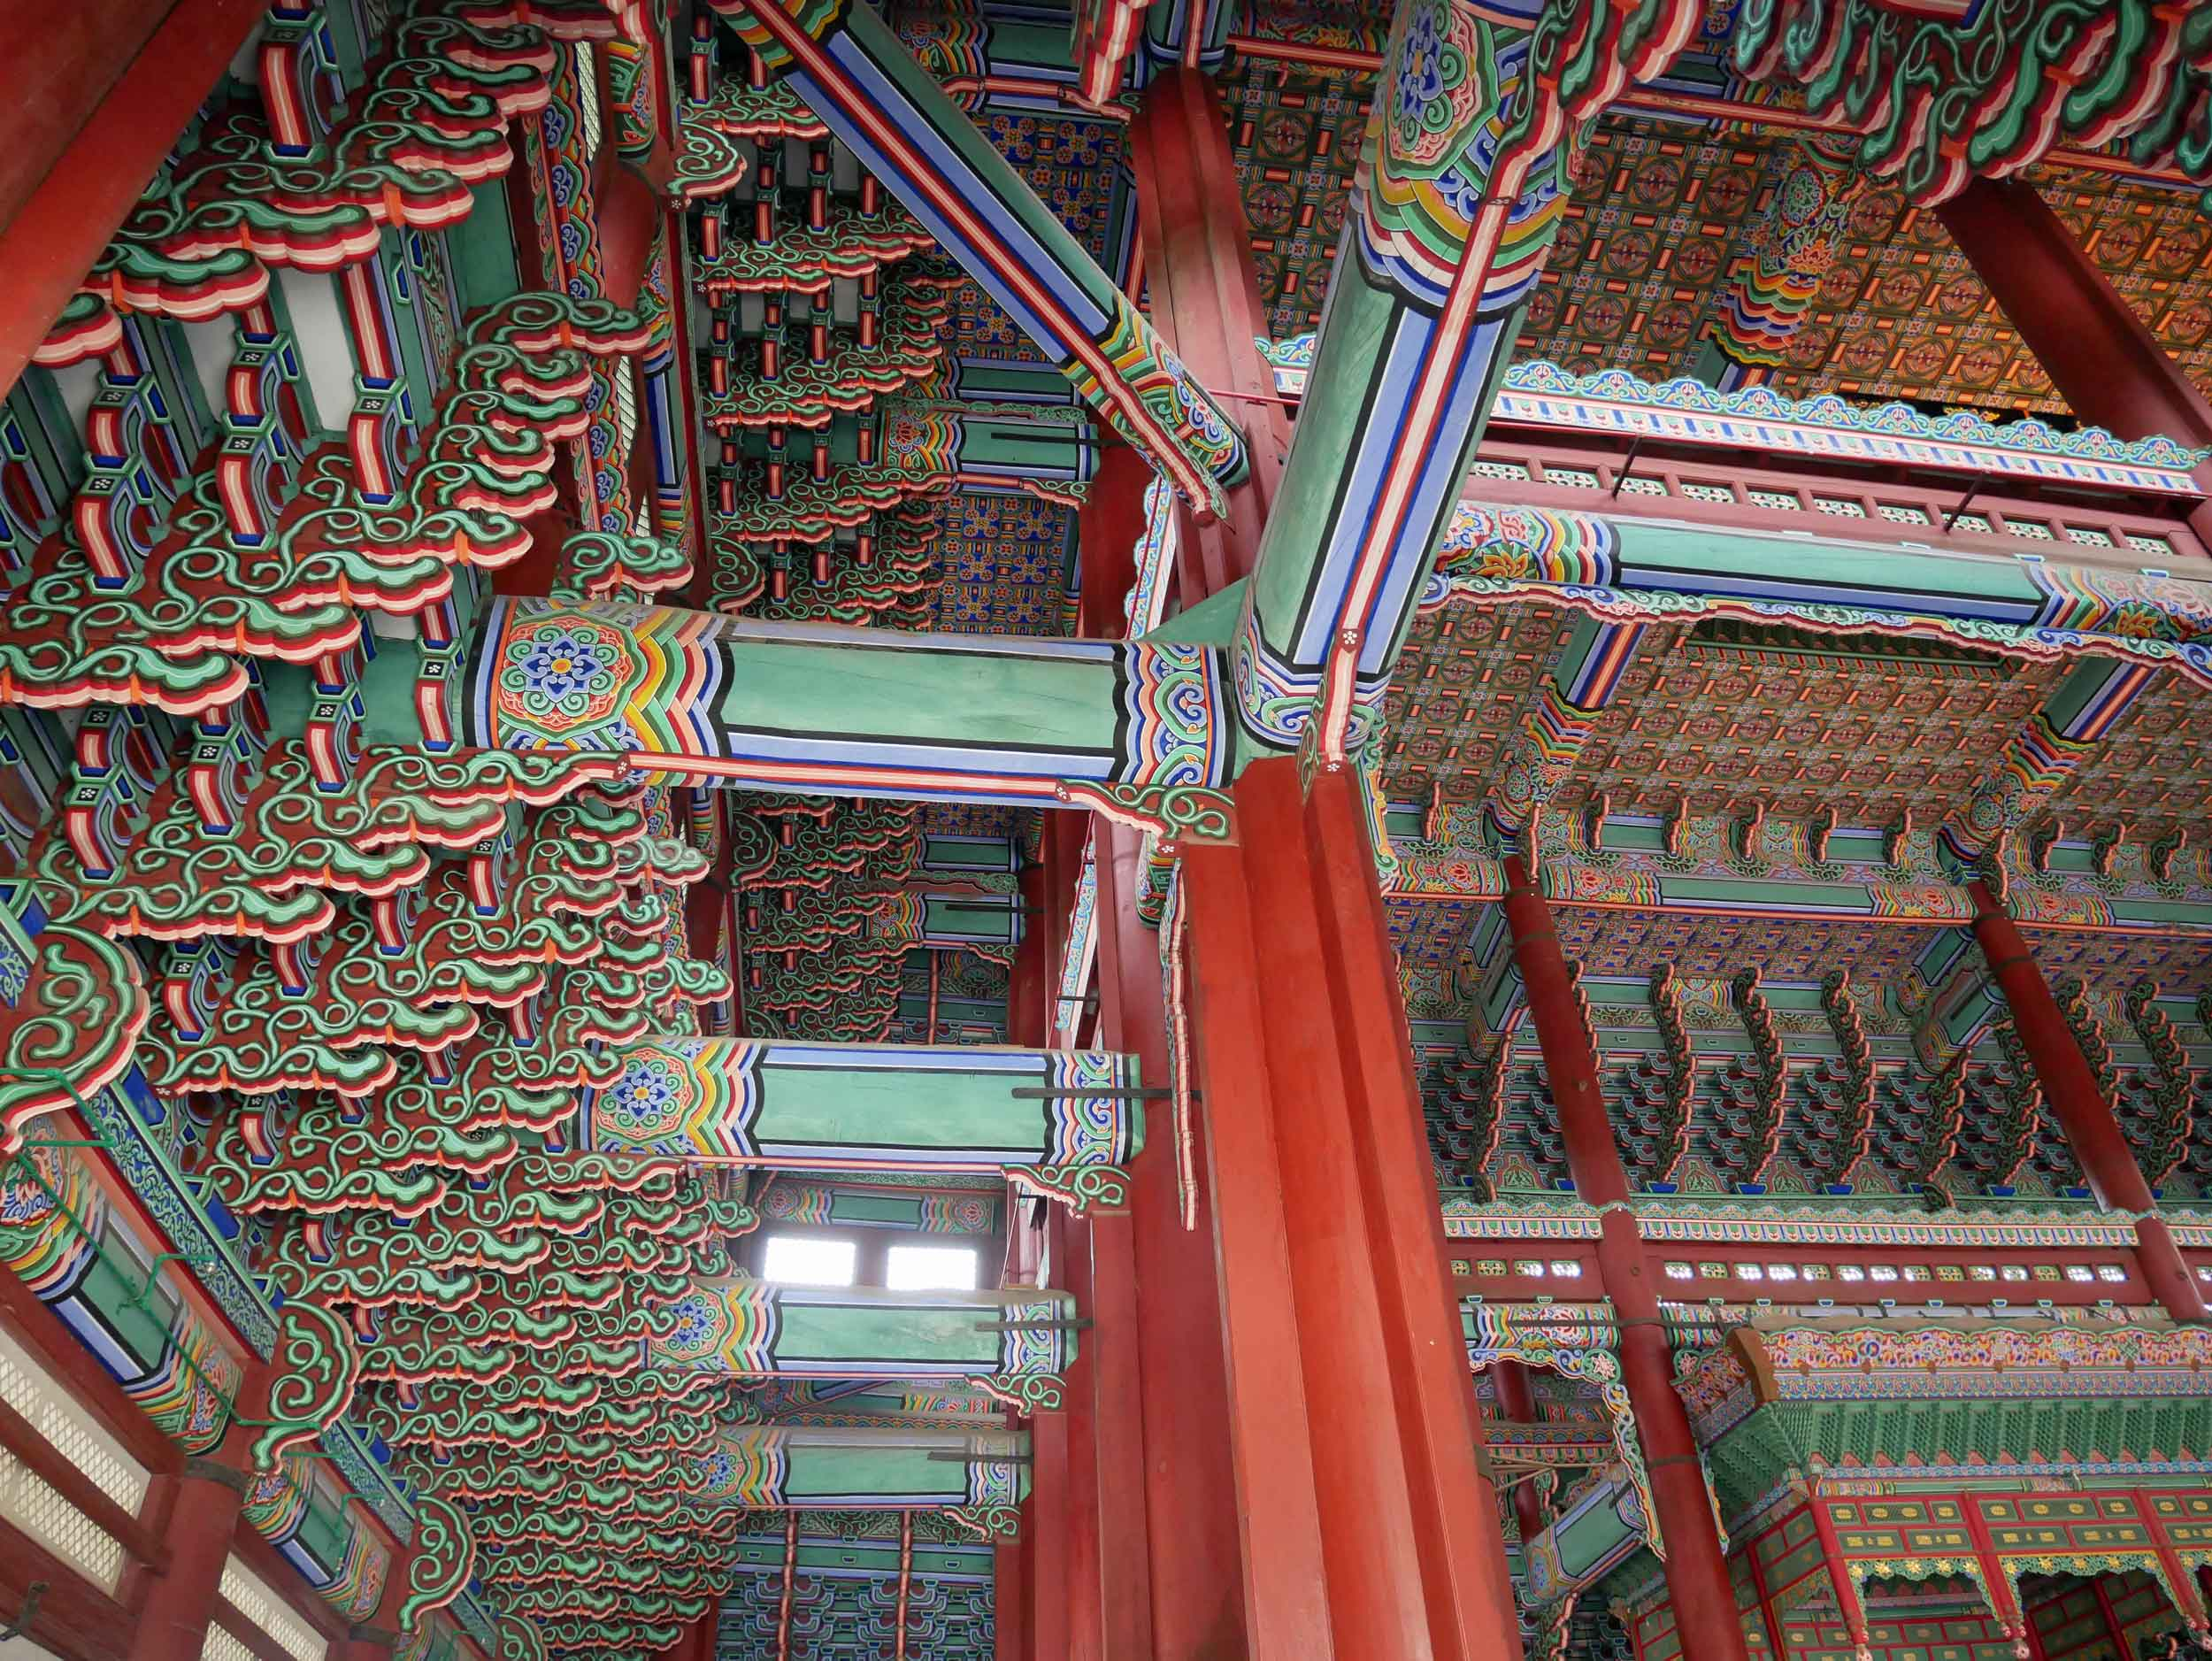 The colorful pillars of the palace halls appeared 3D thanks to sophisticated painting techniques.